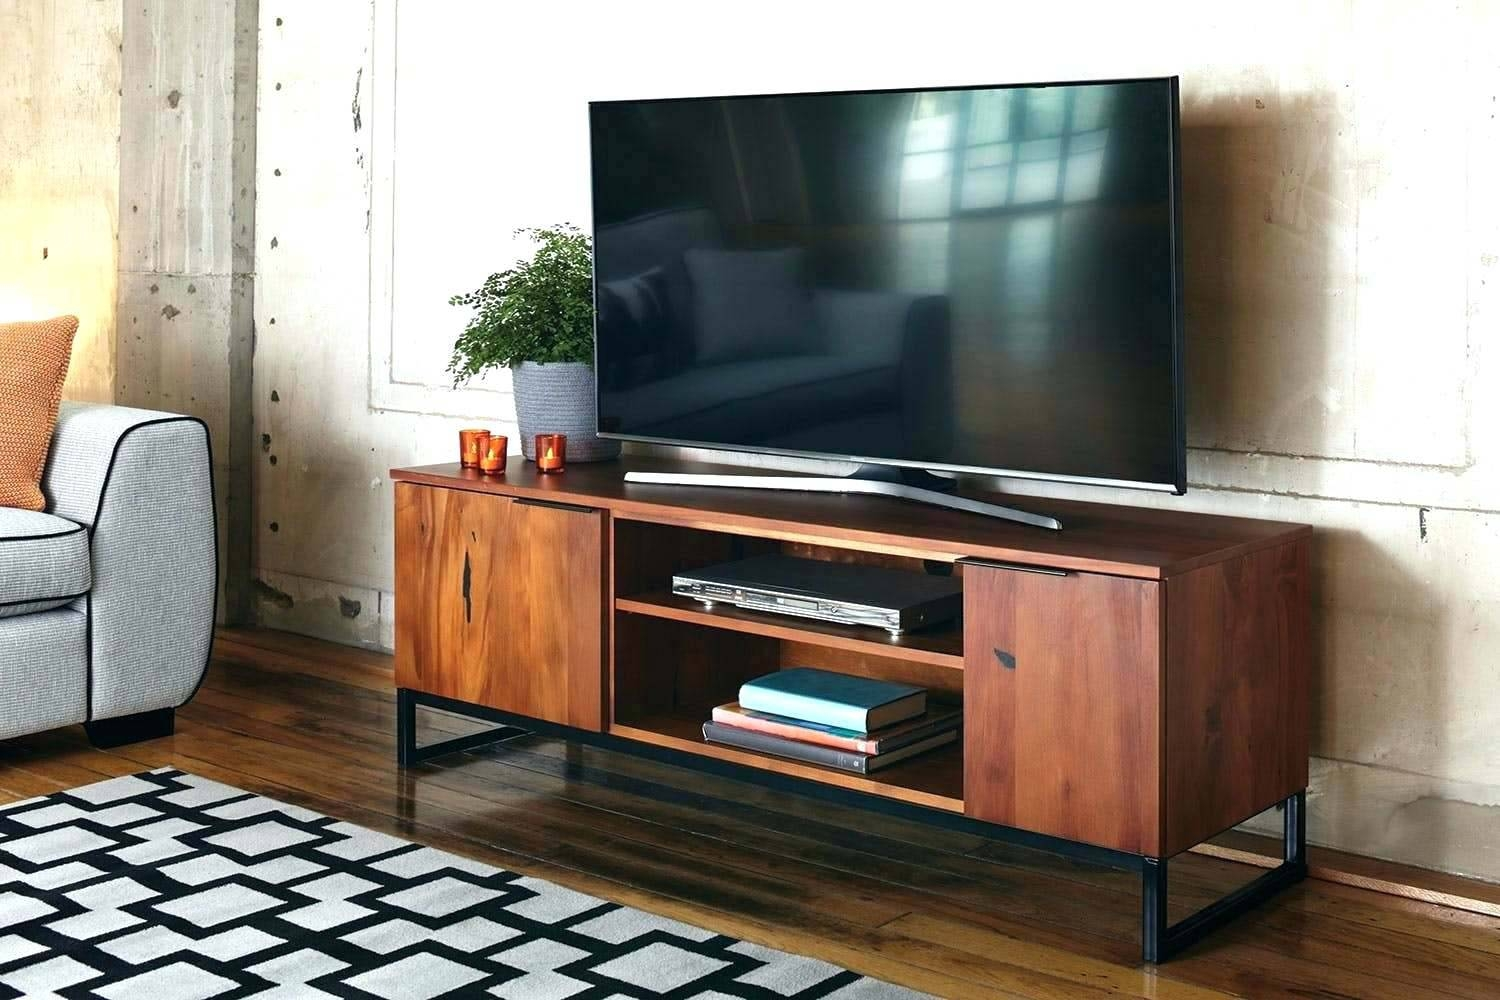 Tv Stand : 25 Chic Vertica Oak Low Contemporary Tv Stand Back In Honey Oak Tv Stands (View 3 of 15)